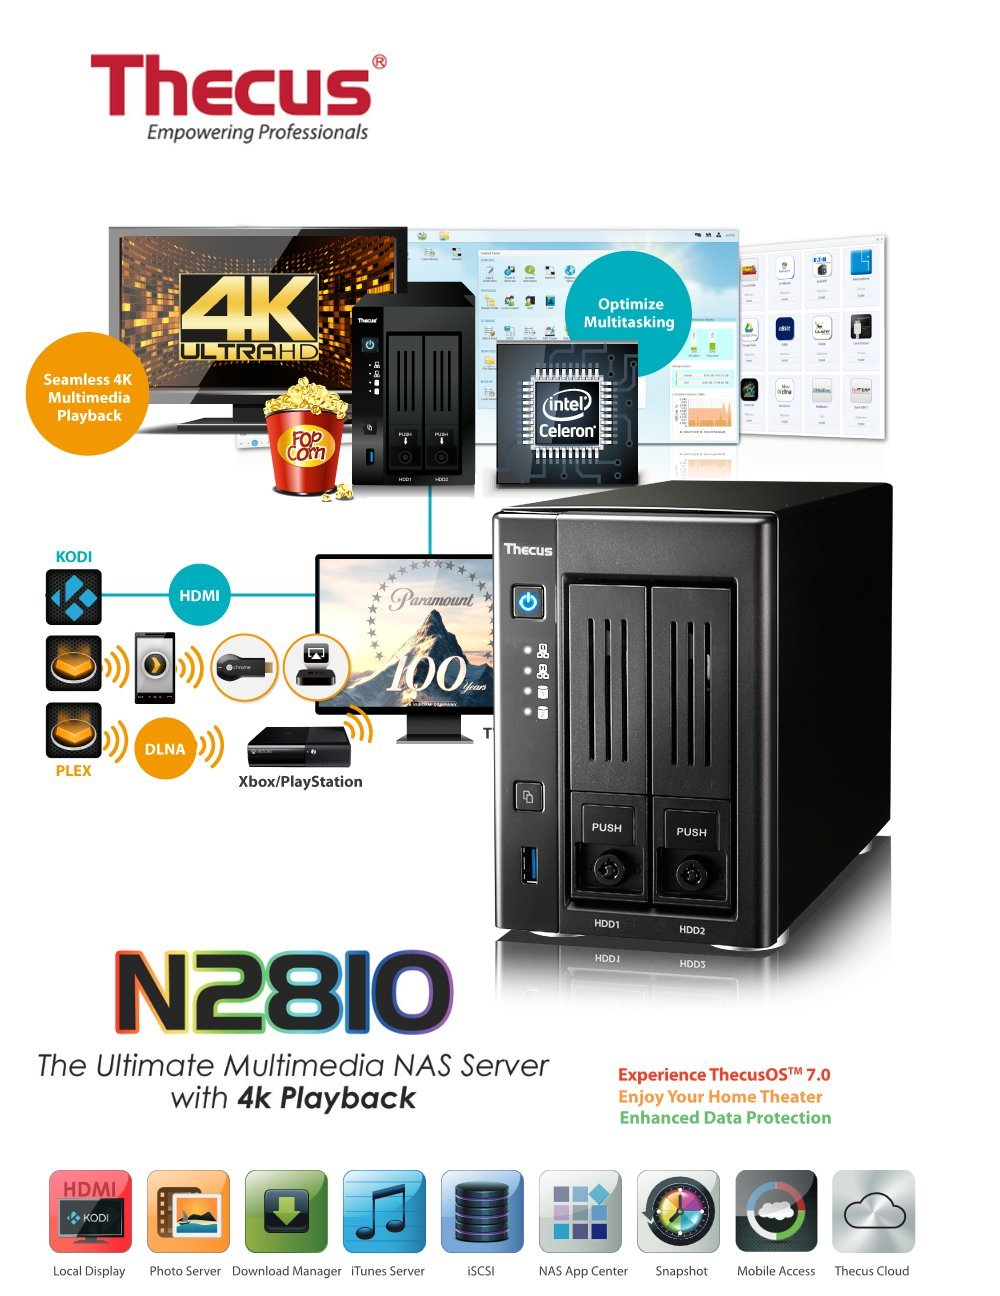 Thecus 2 Bay NAS with Latest OS7 interface (N2810)